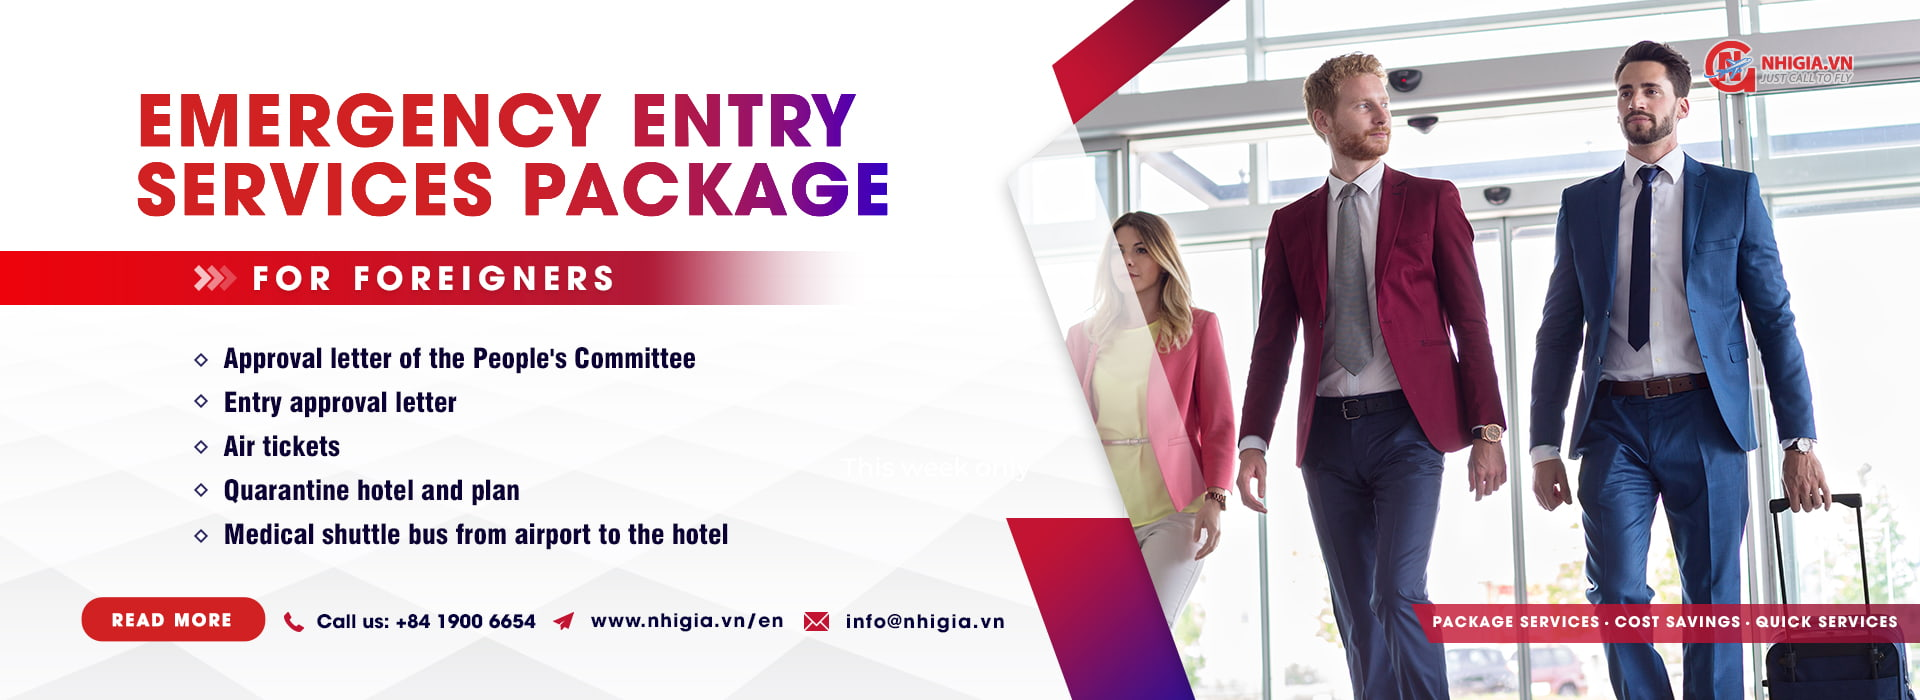 Entry services package for foreigners entering Vietnam